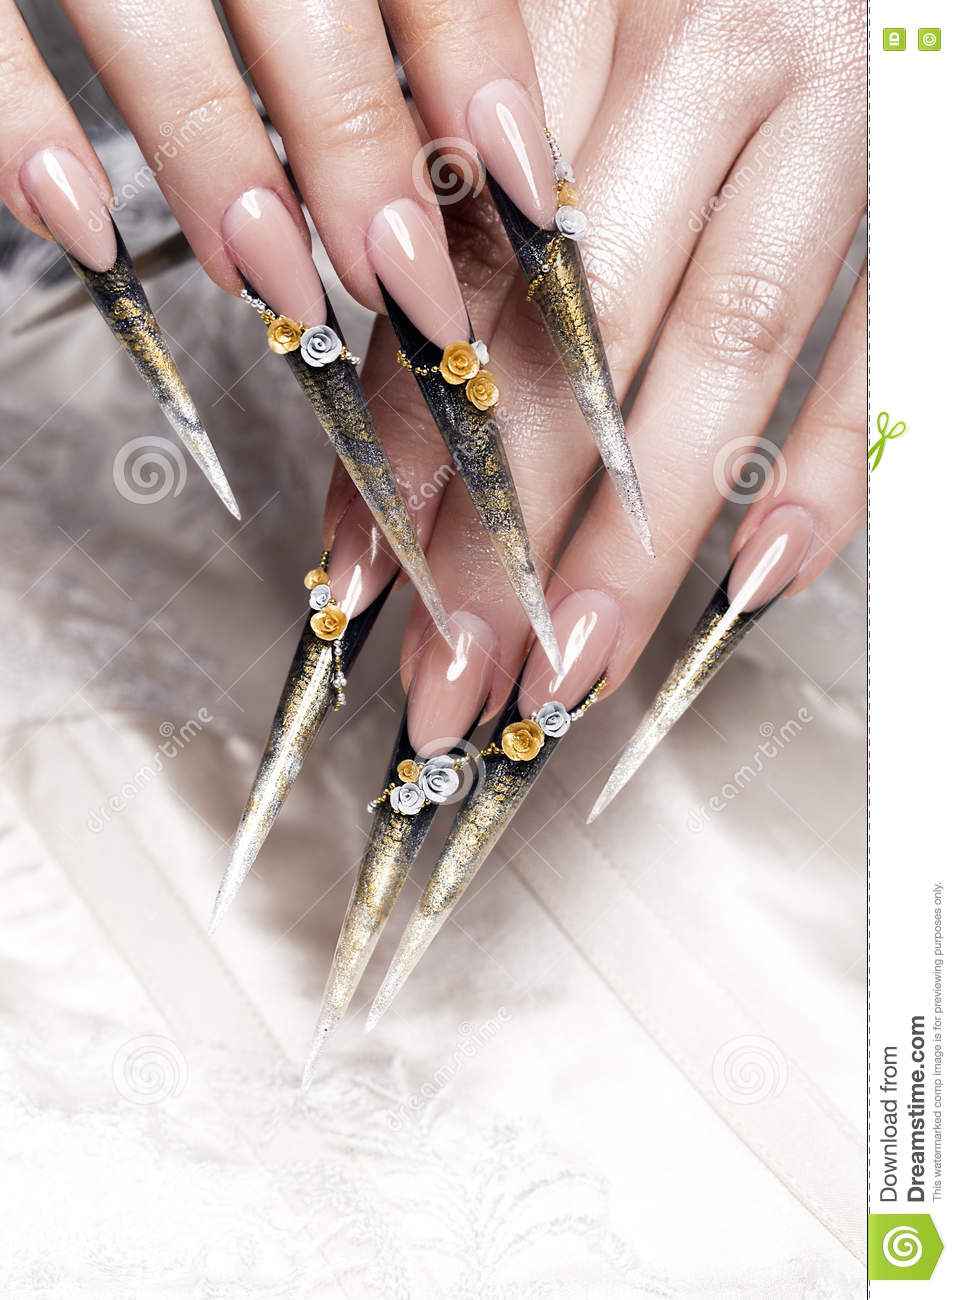 Long Beautiful Manicure With Flowers On Female Fingers. Nails Design ...